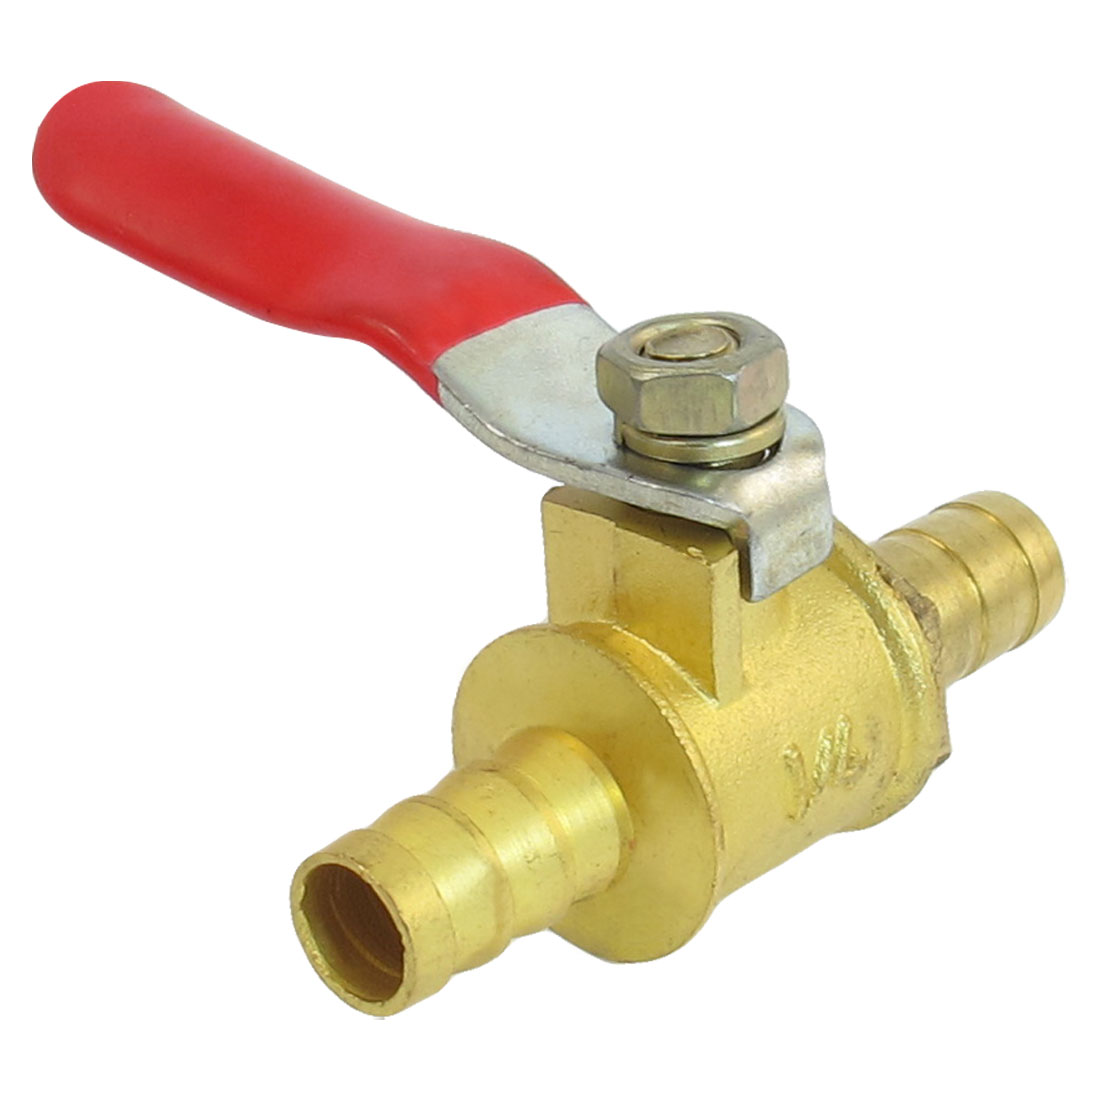 Full Port 8mm Dia. Barb Hose Red Lever Handle Brass Ball Valve